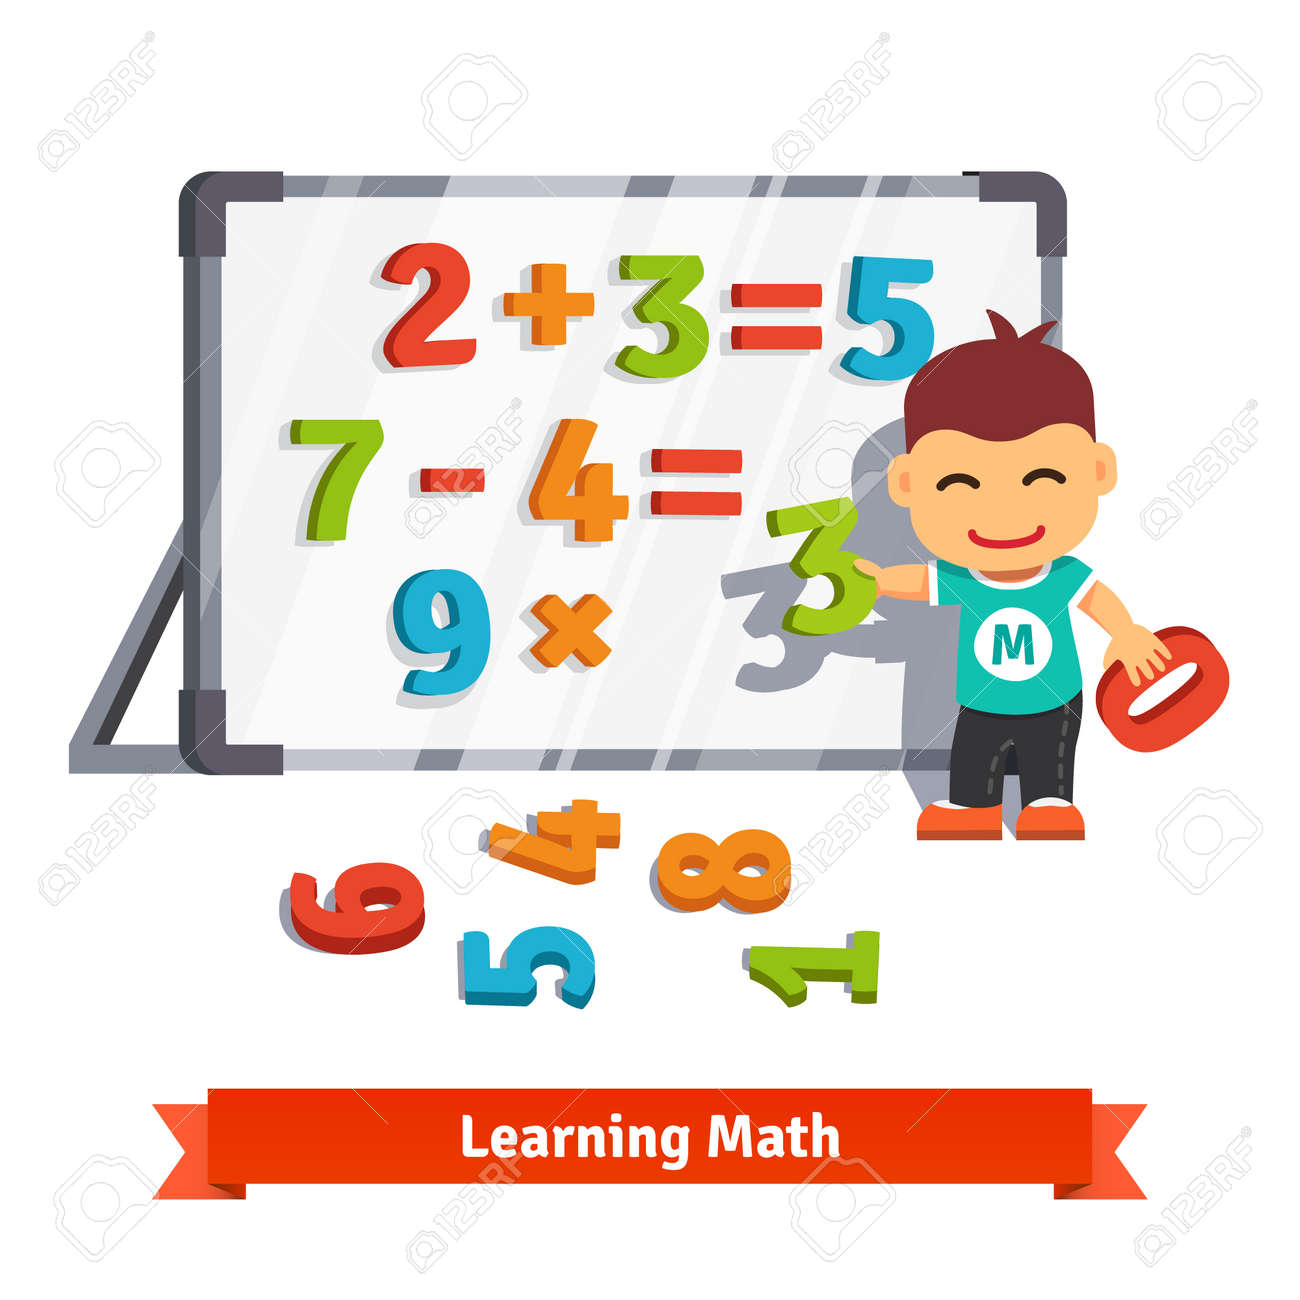 Boy learns math doing addition, subtraction and multiplication with plastic numbers on a magnet board. Flat style cartoon vector illustration isolated on white background. Stock Vector - 46283921